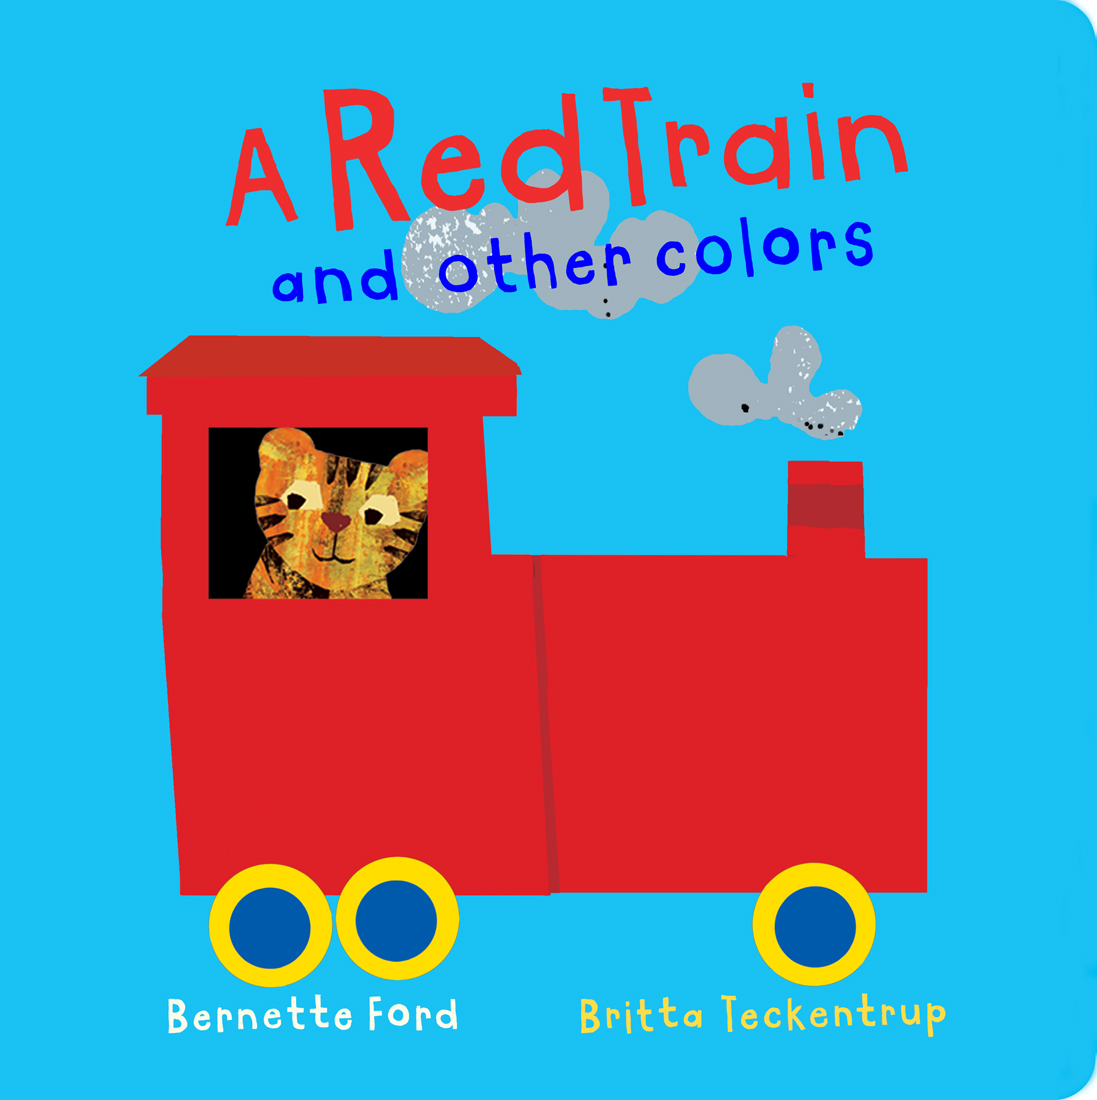 A Red Train and Other Colors